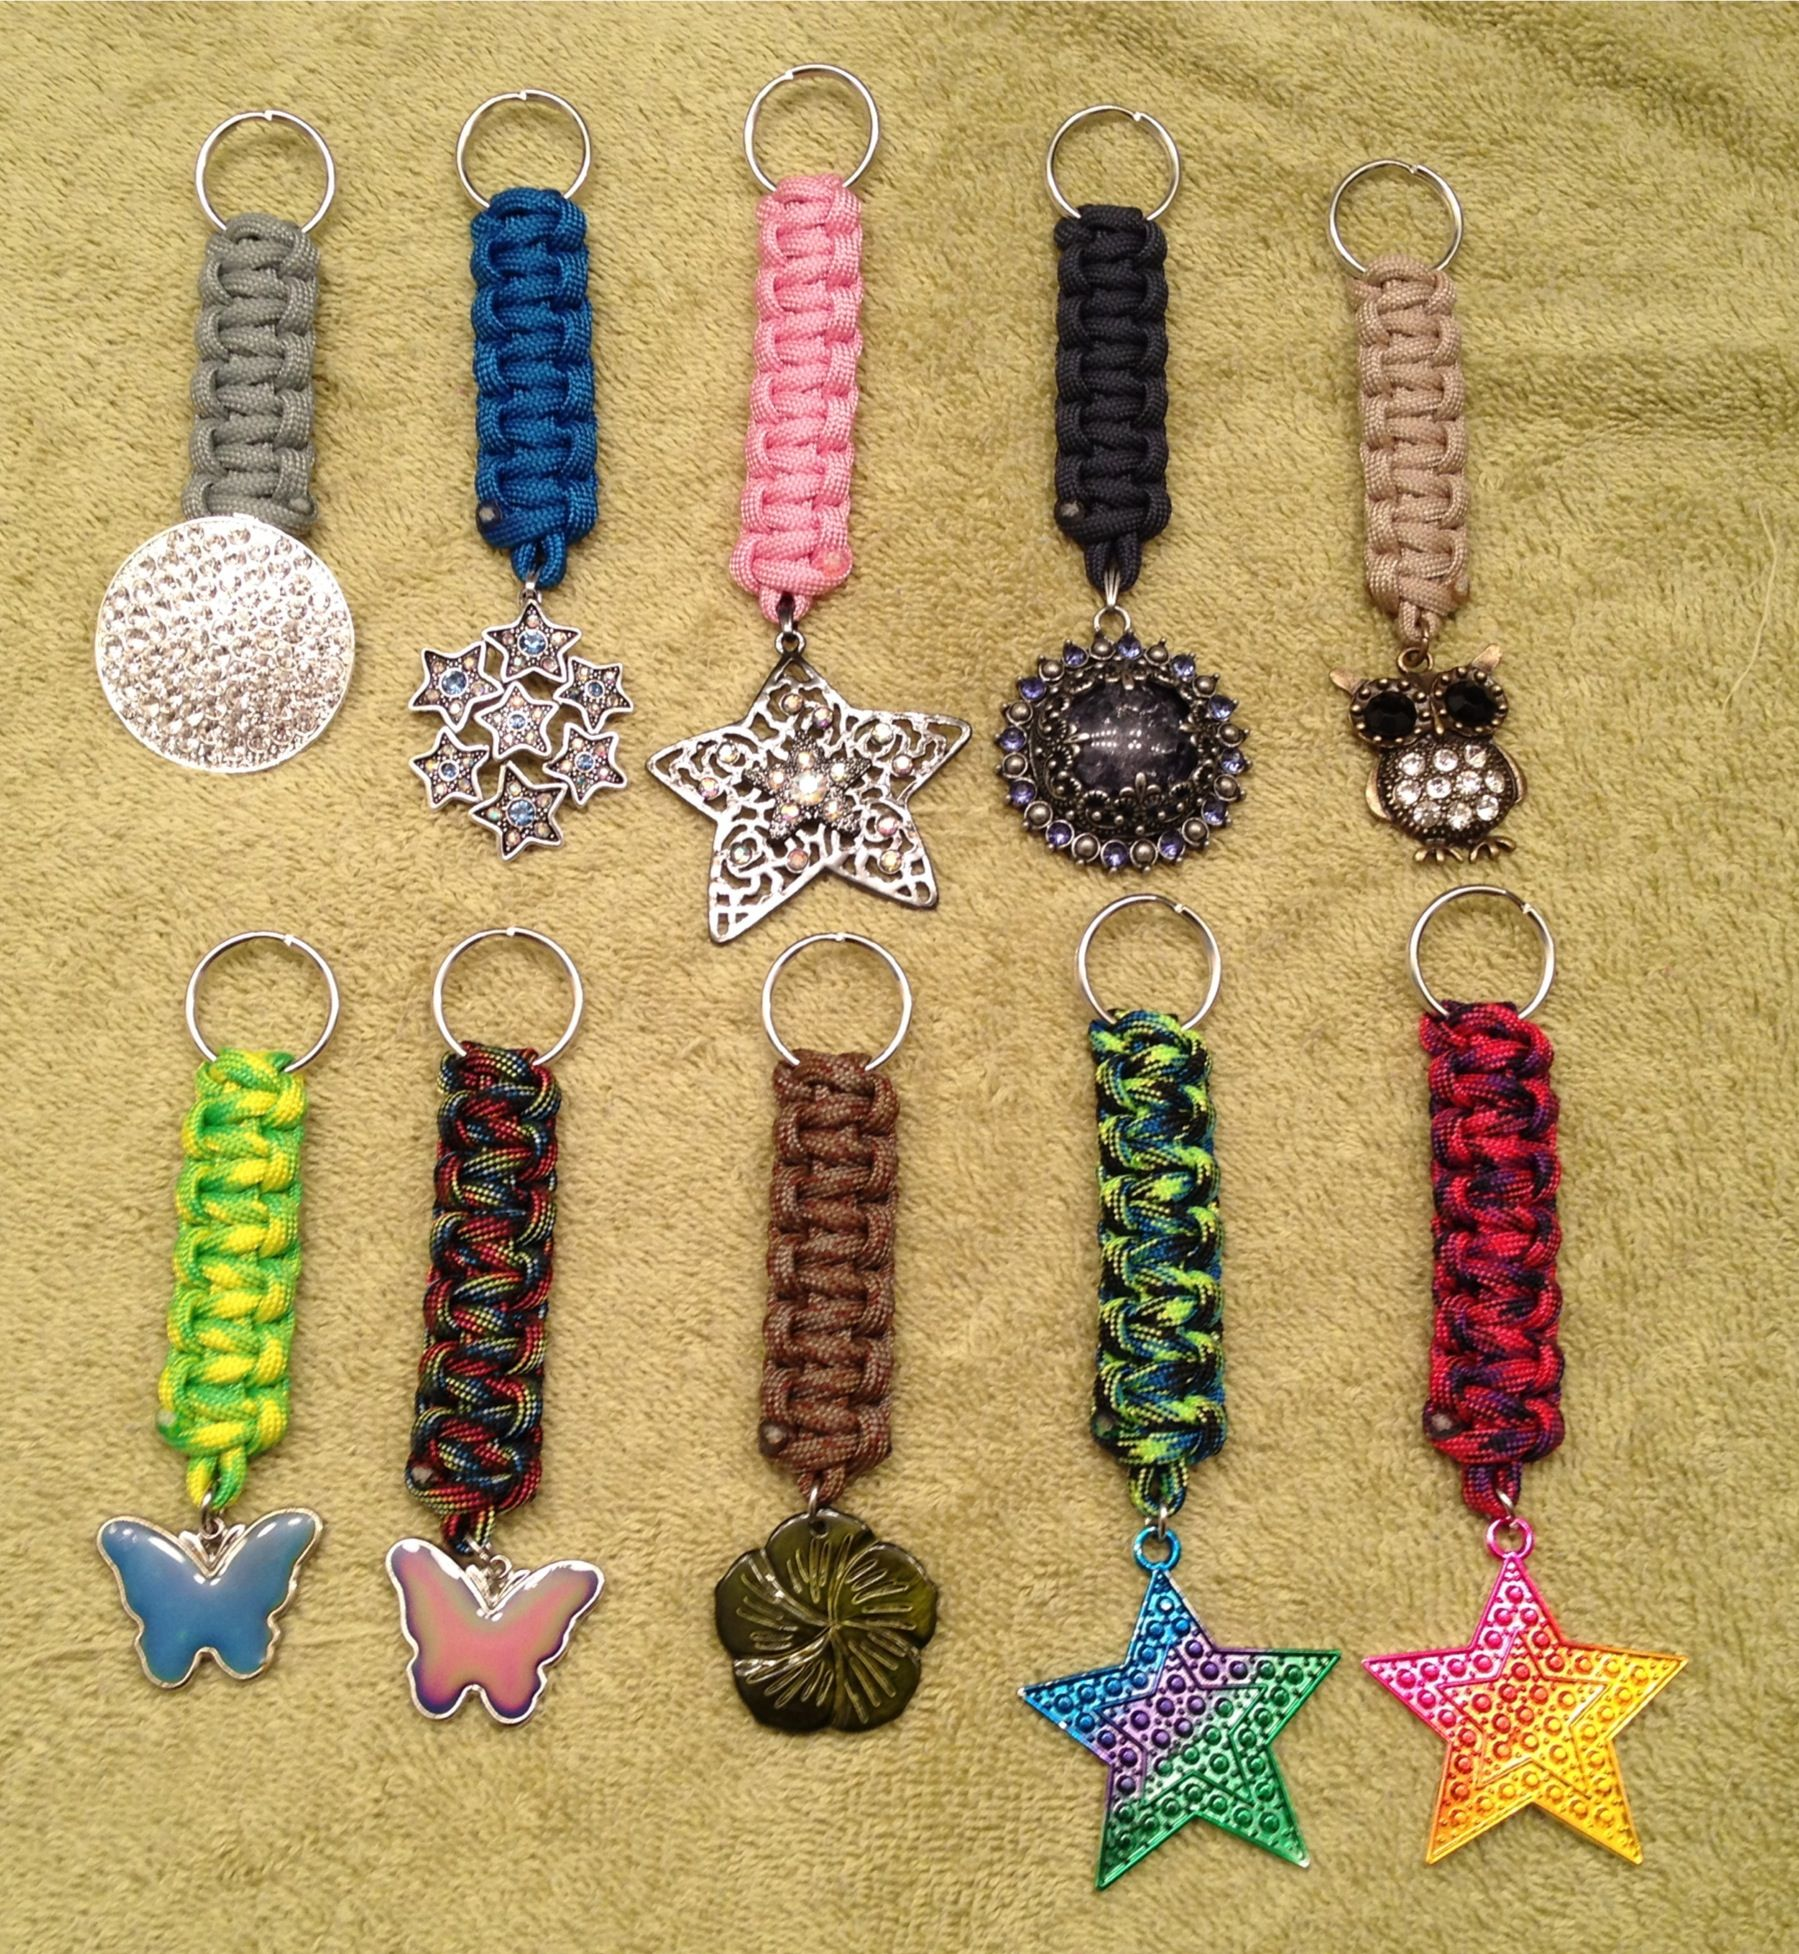 New Batch Of Key Chains Making Jewelry For Beginners